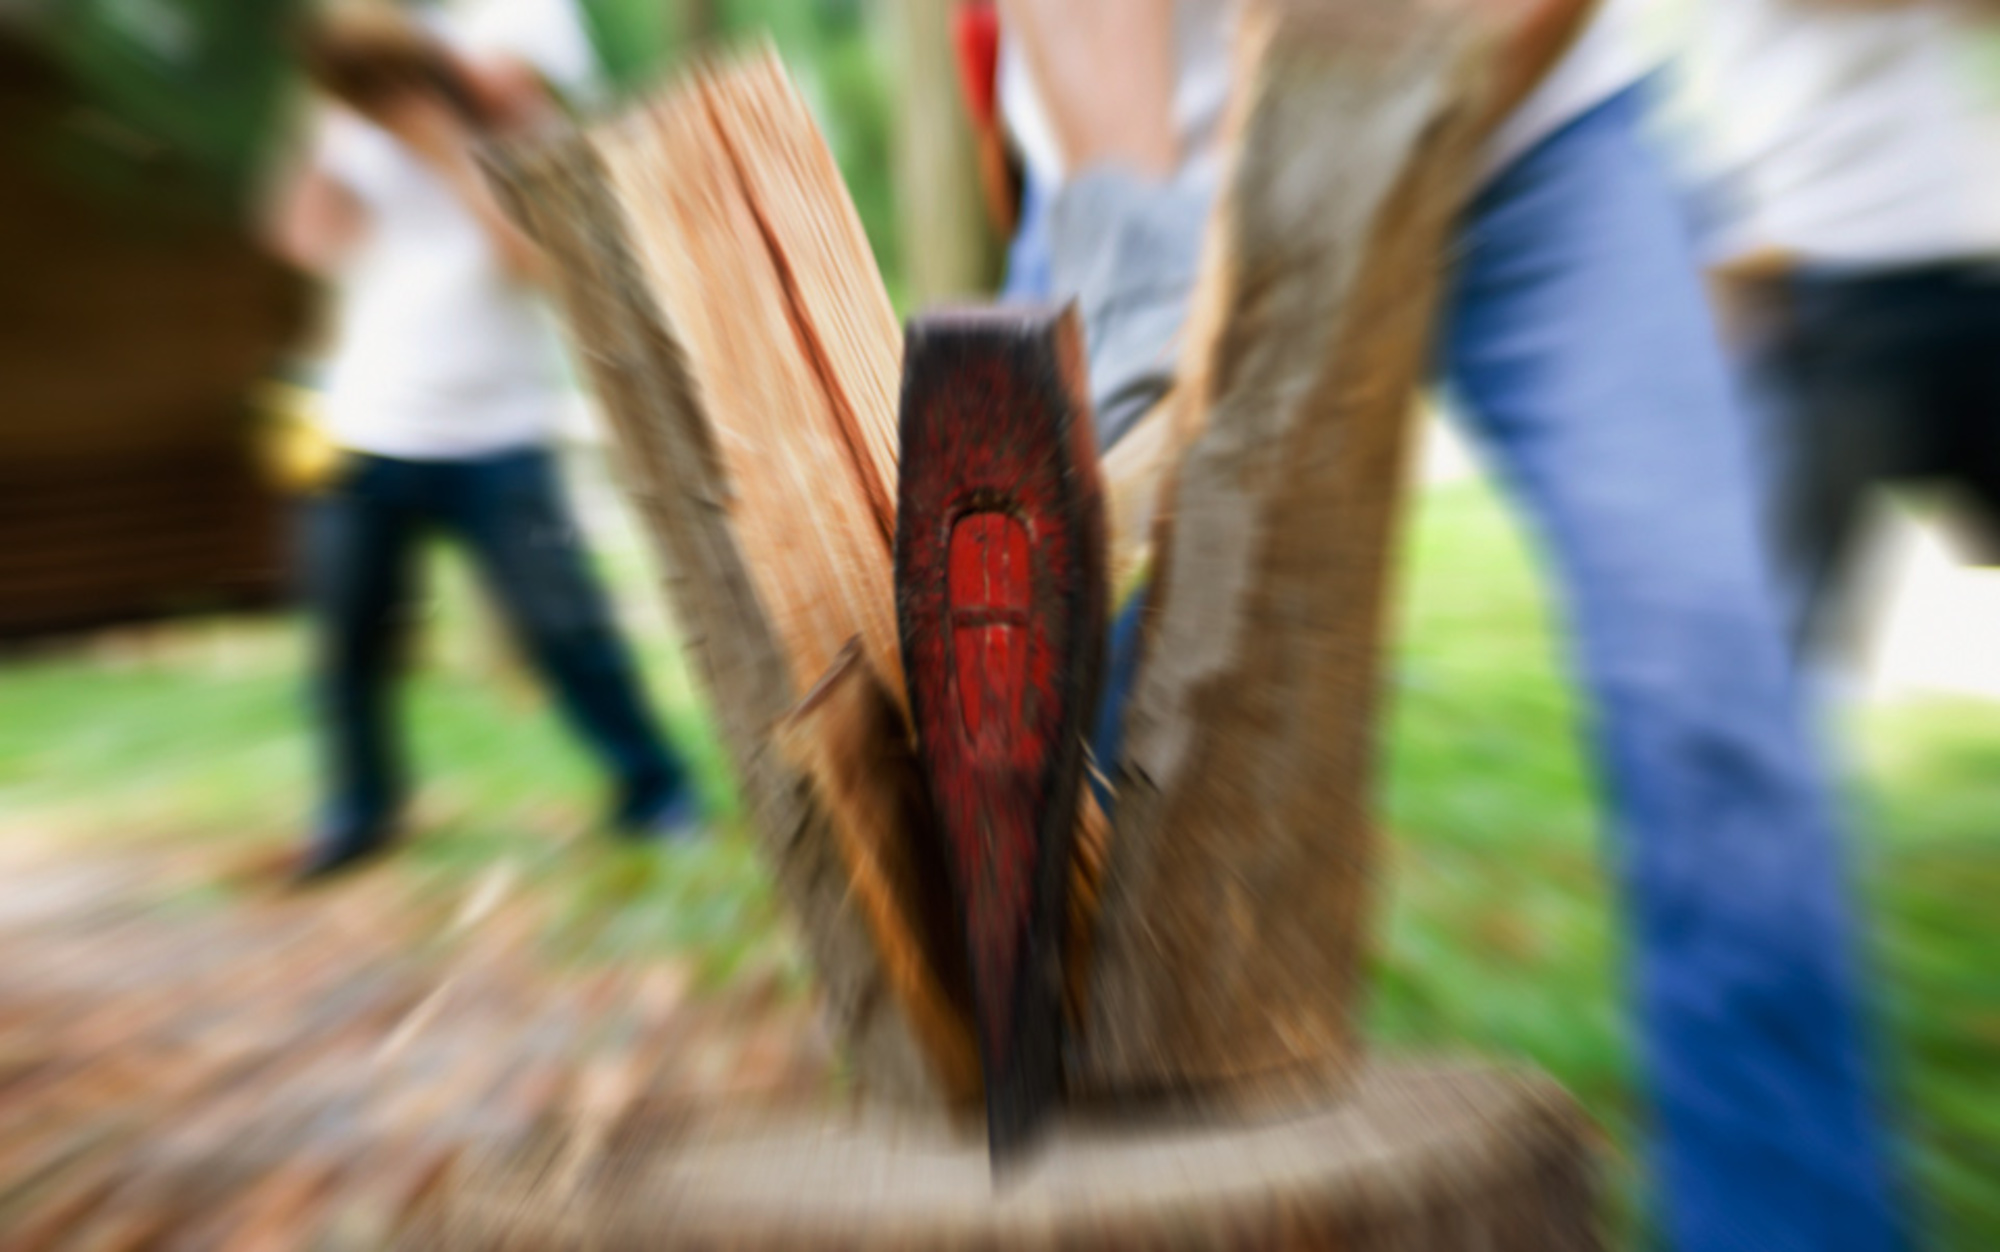 The Simple Pleasure And Rituals Of Chopping Firewood Aeon Essays